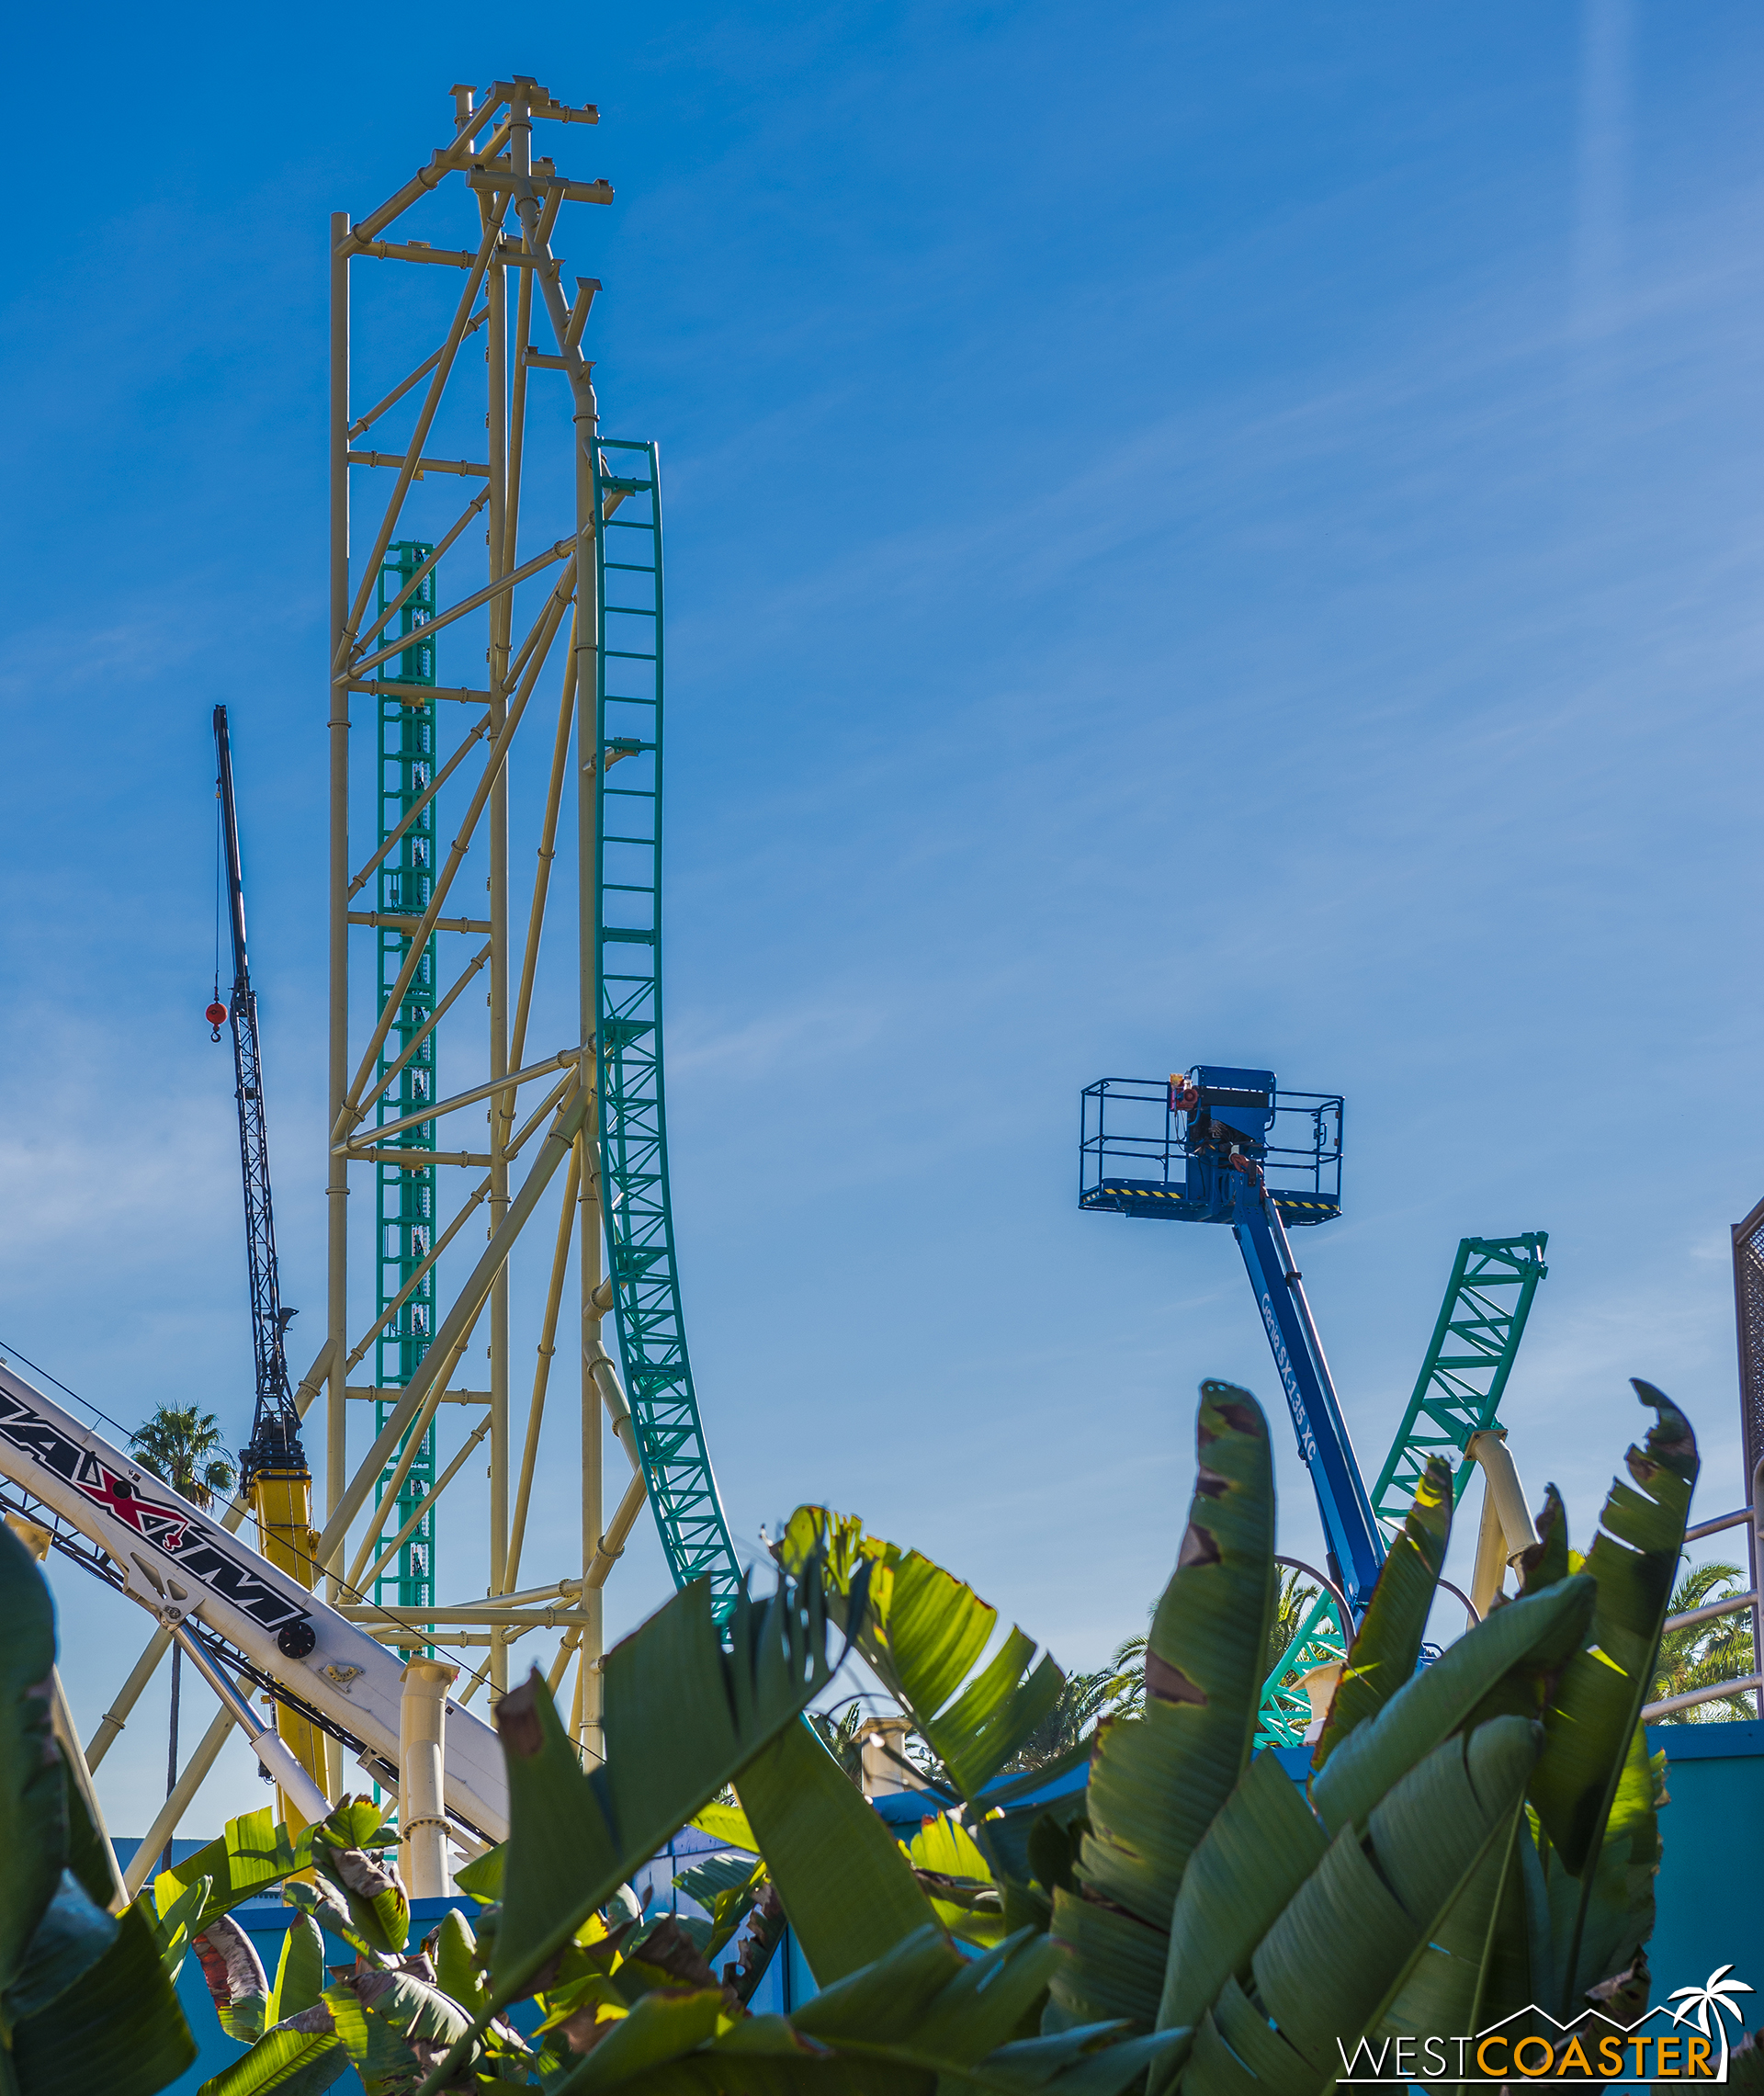 The ride will be visible from pretty much any angle in the park.